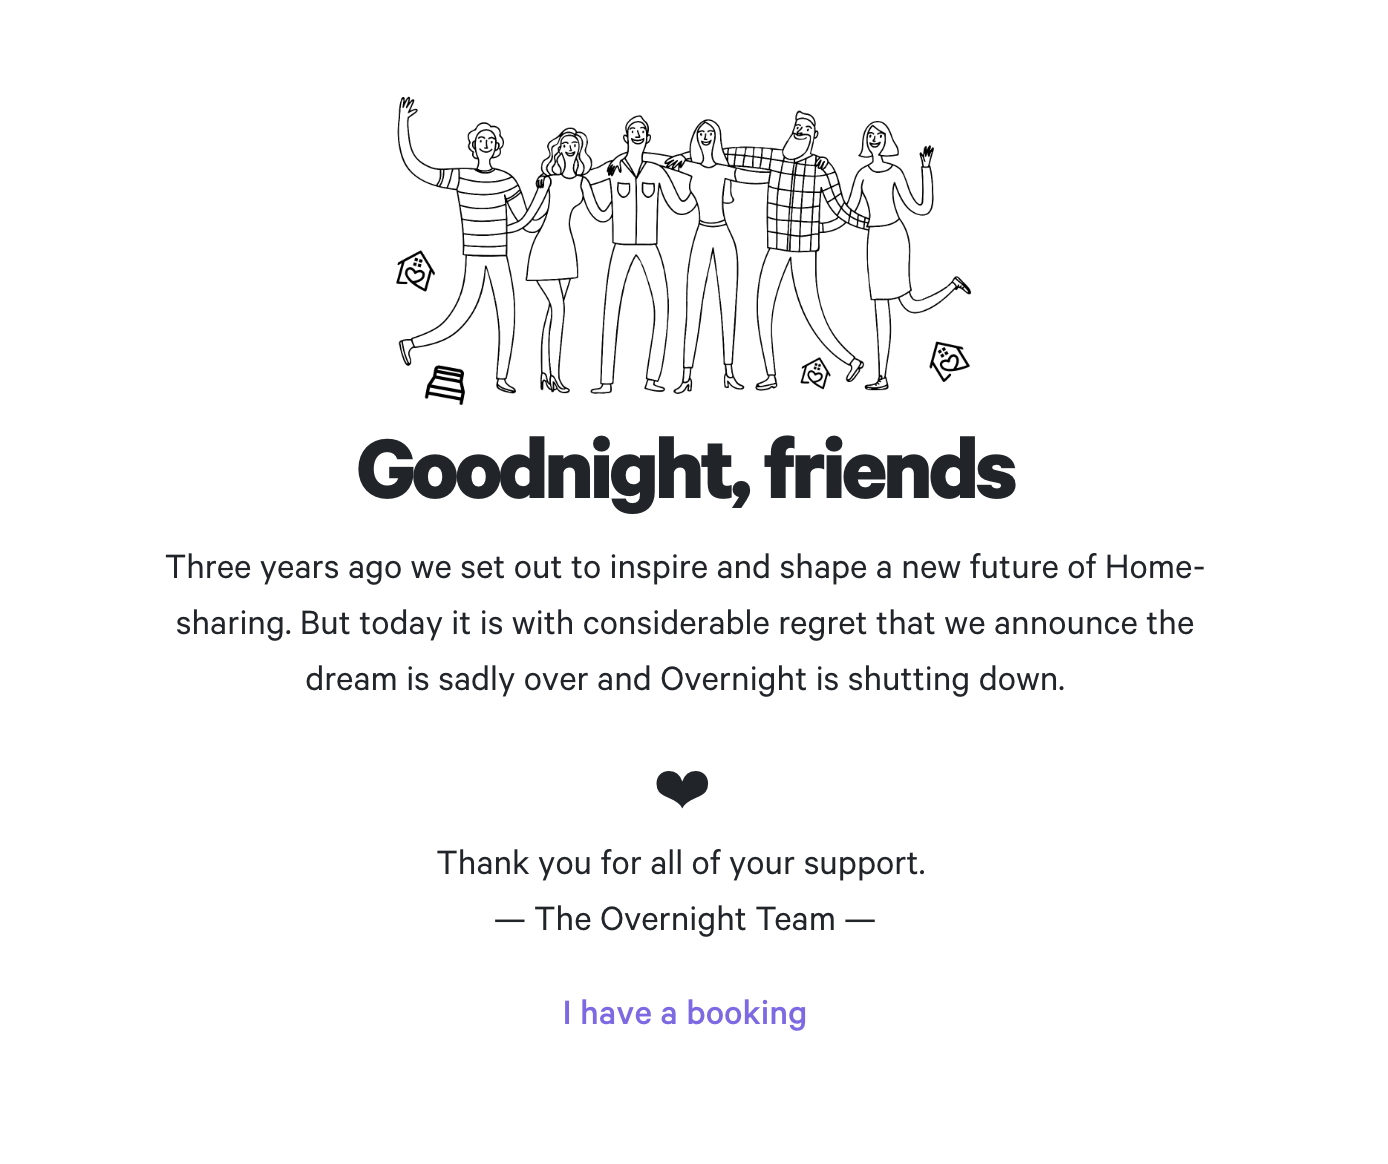 When a startup says, 'Goodnight'.